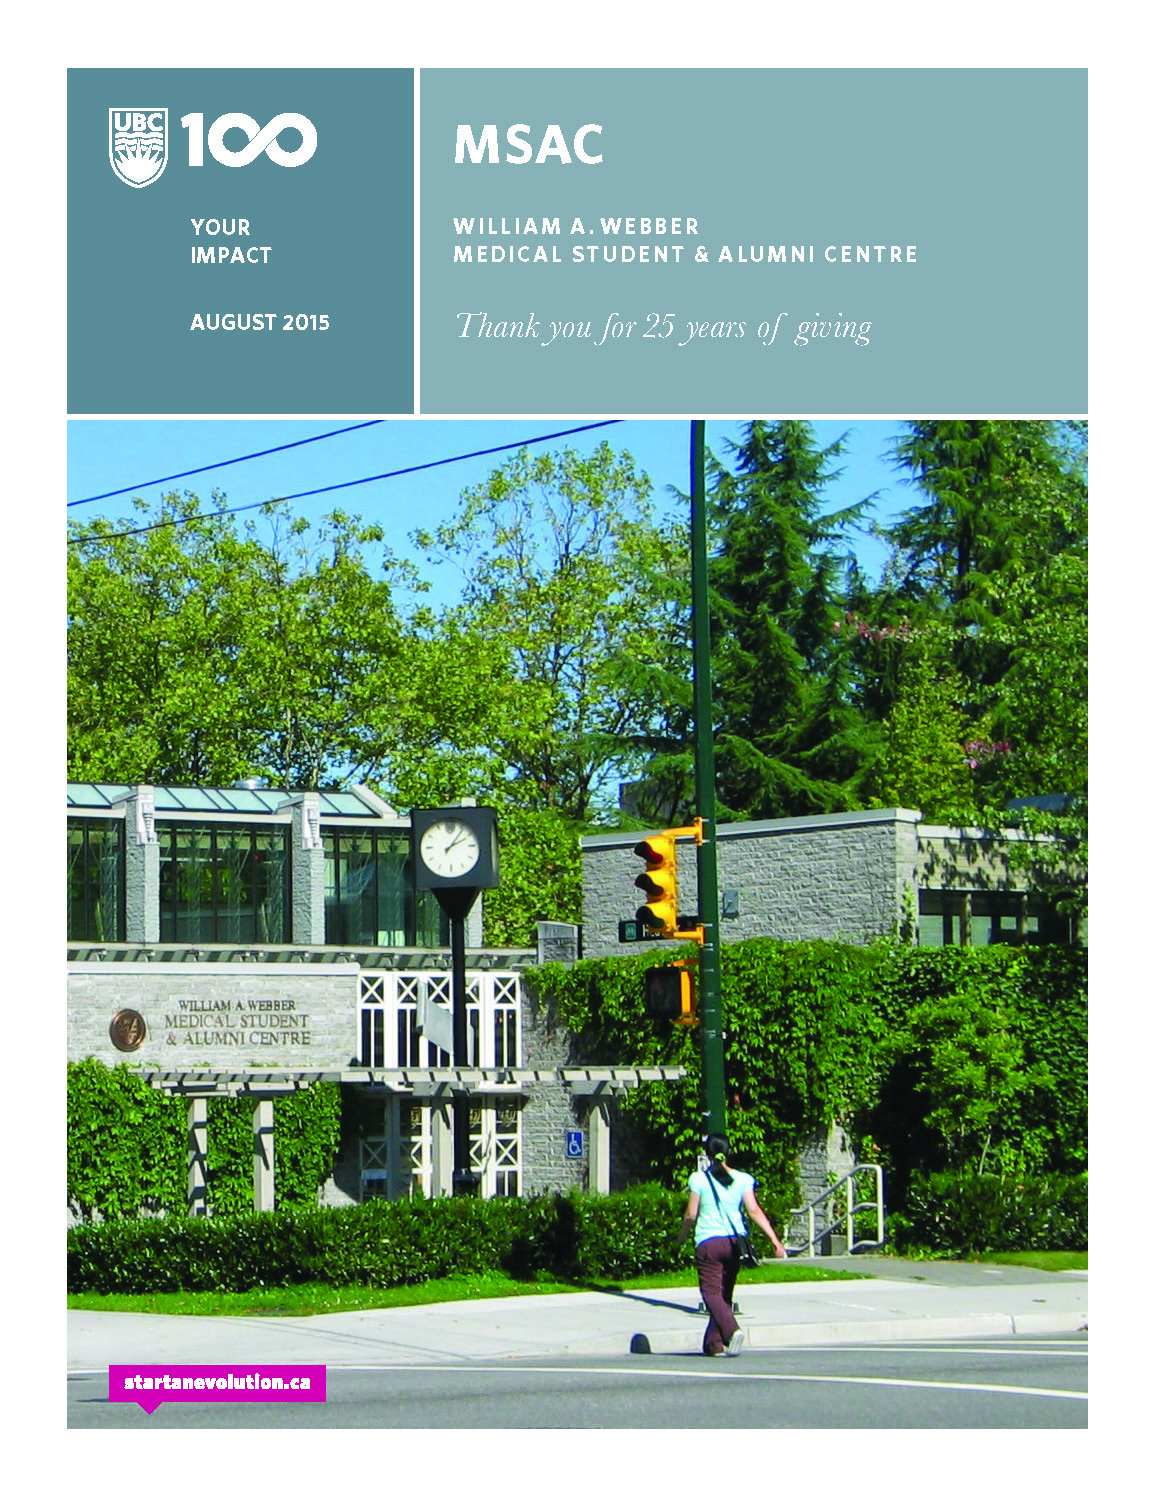 Student and Alumni Centre Report Cover